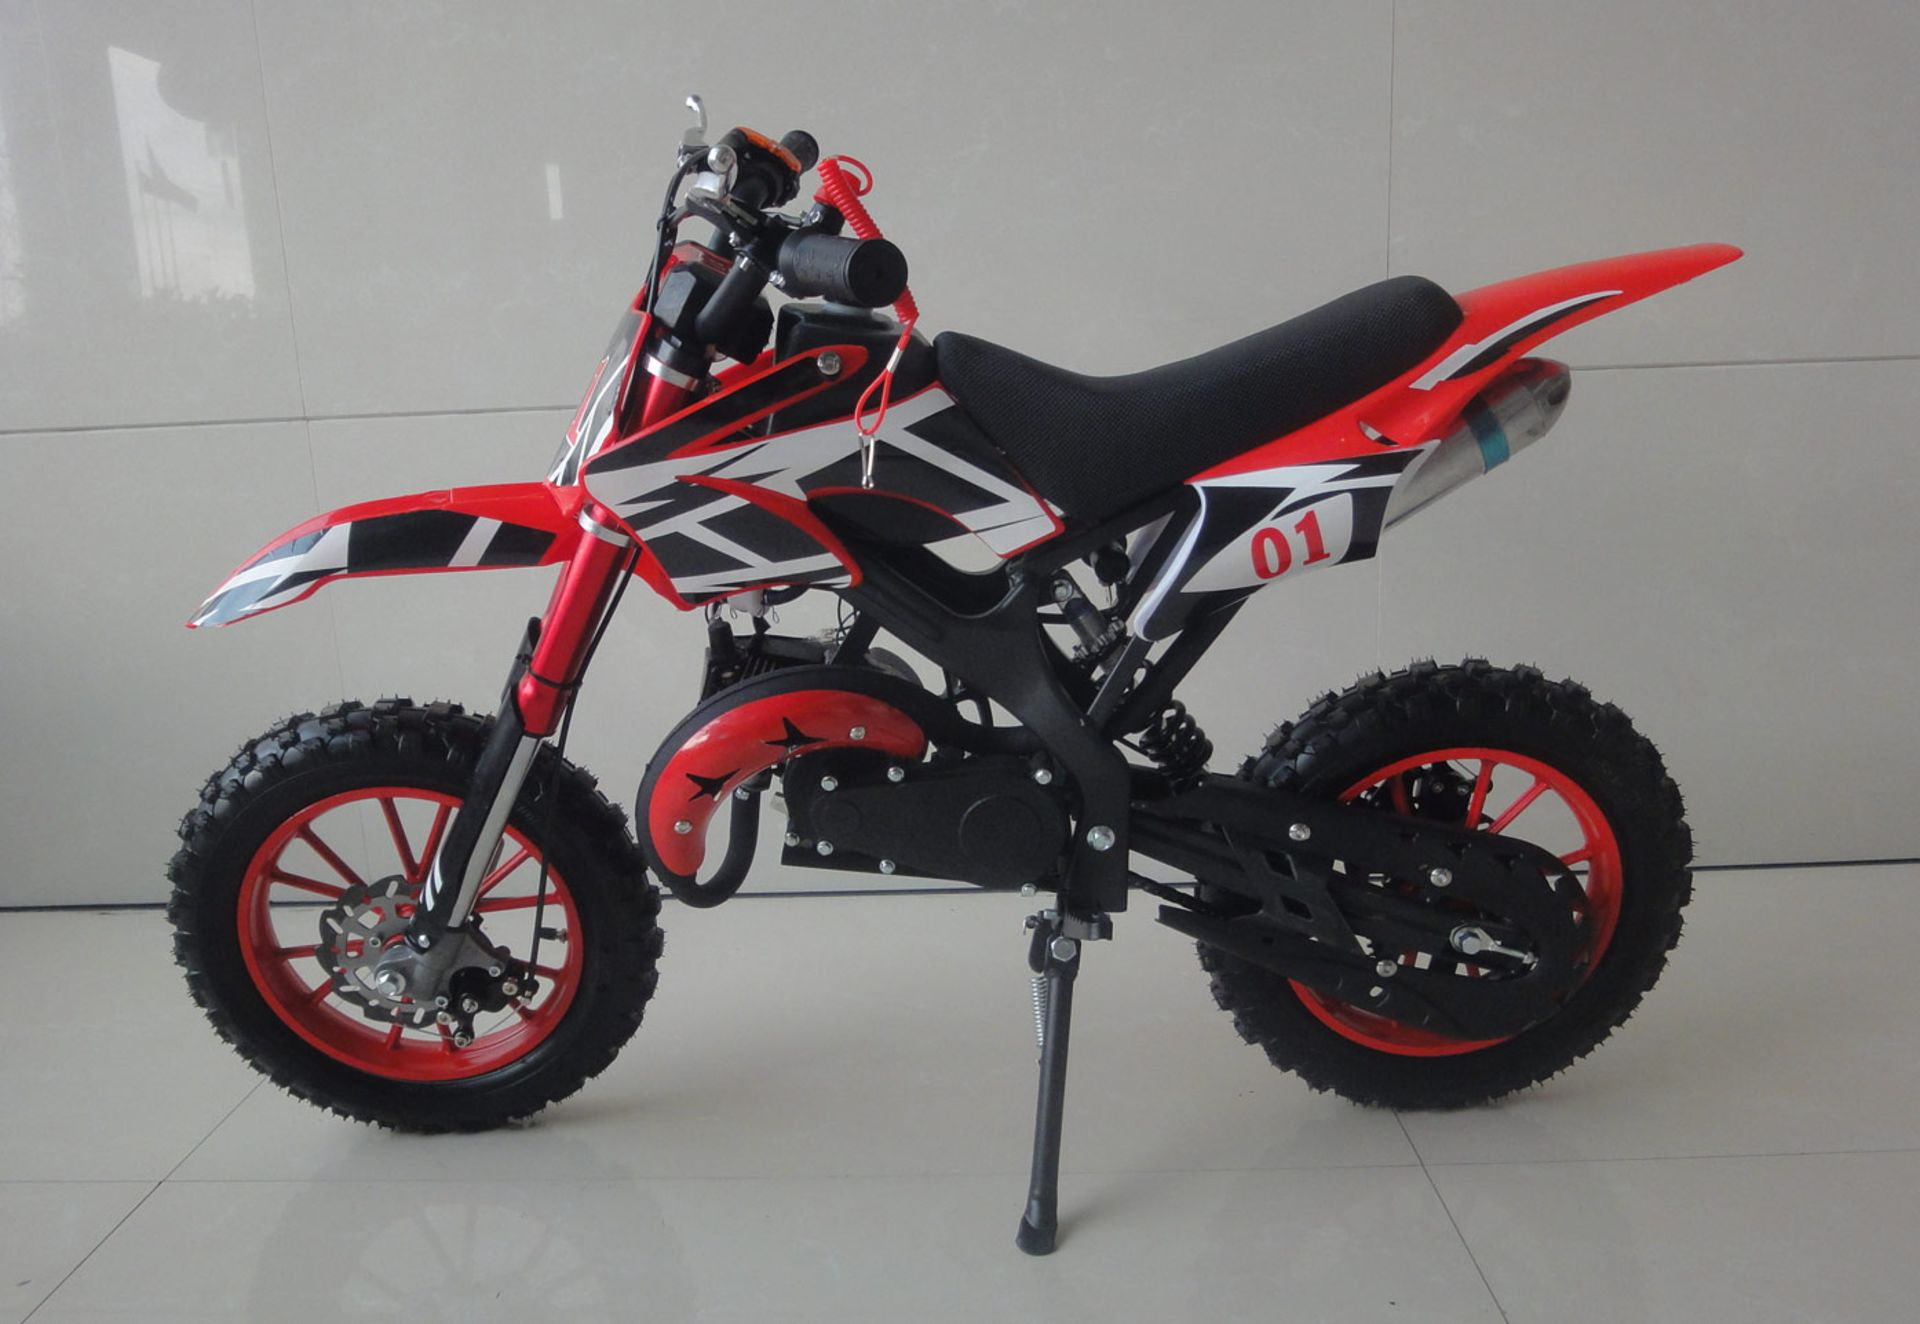 + VAT Brand New 49cc Falcon Mini Dirt Bike - Full Front & Rear Suspension - Disc Brakes - Easy Pull - Image 4 of 6